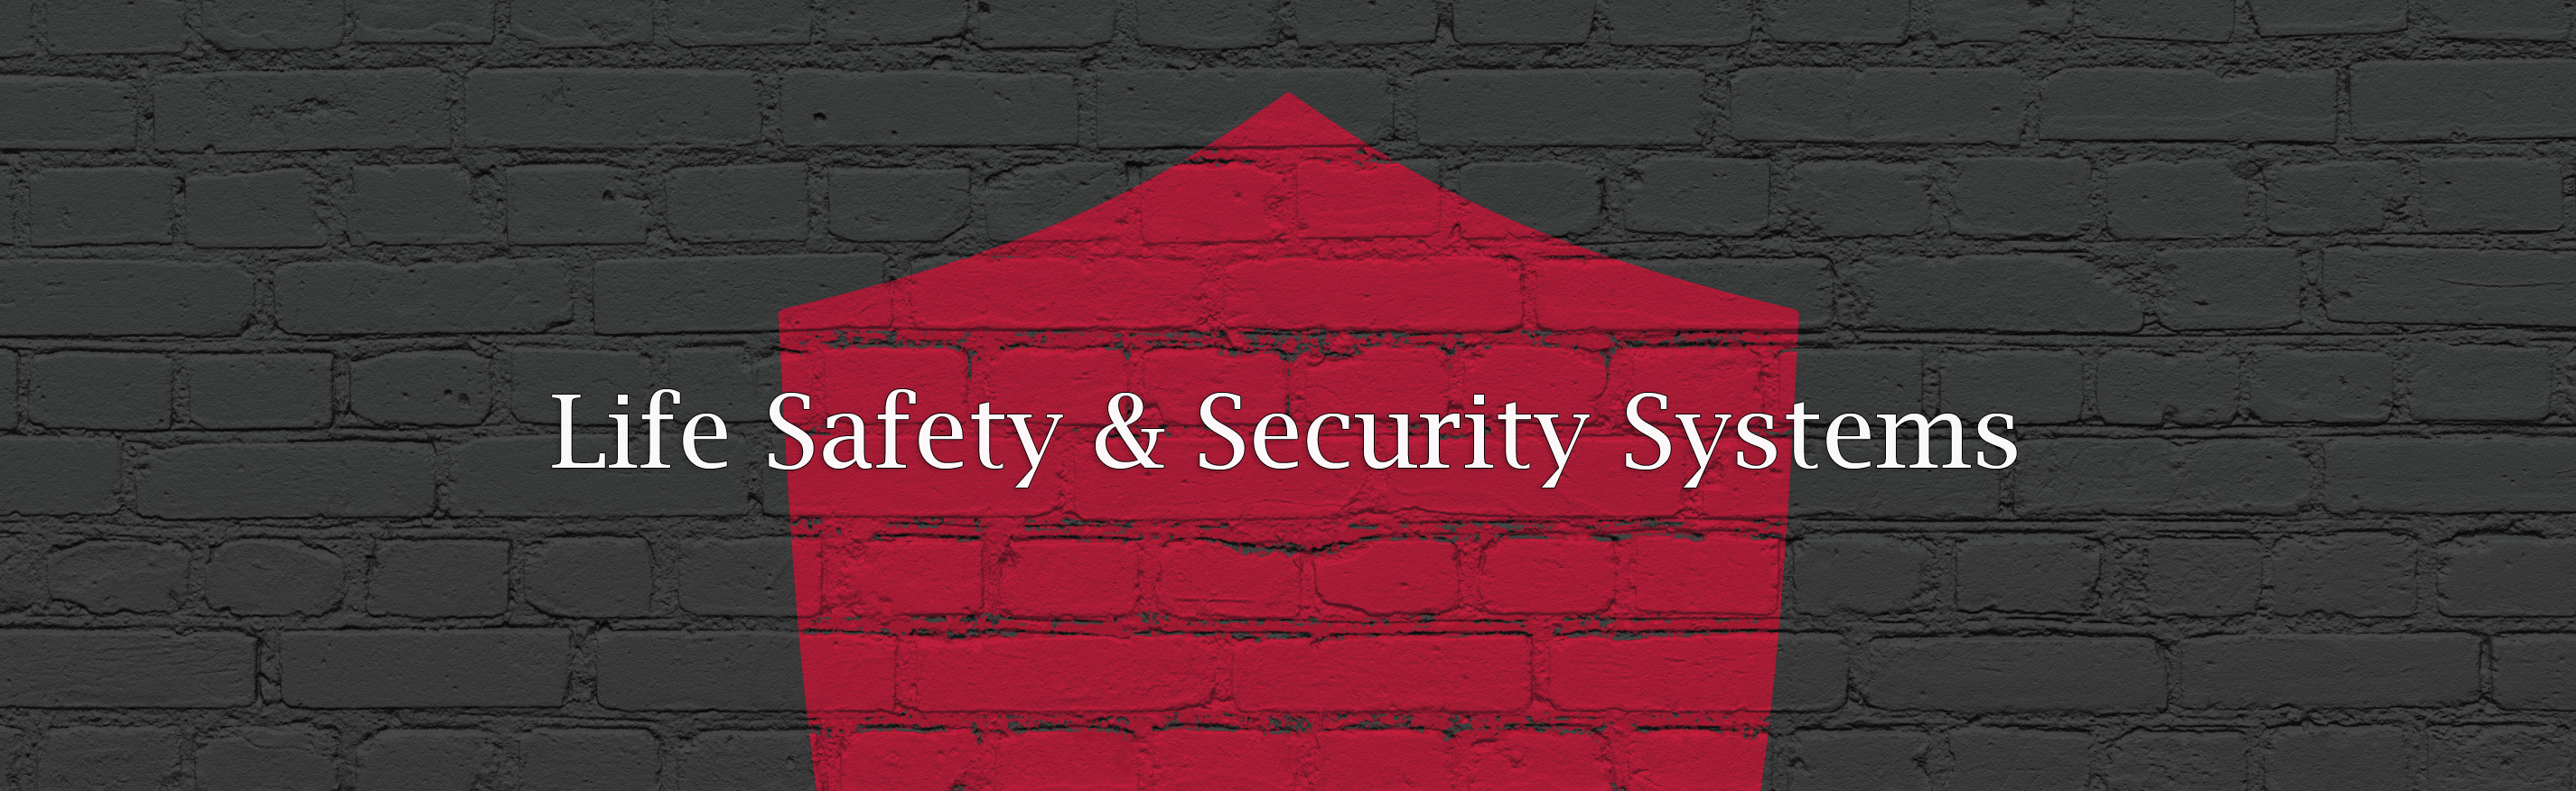 Life Safety and Security